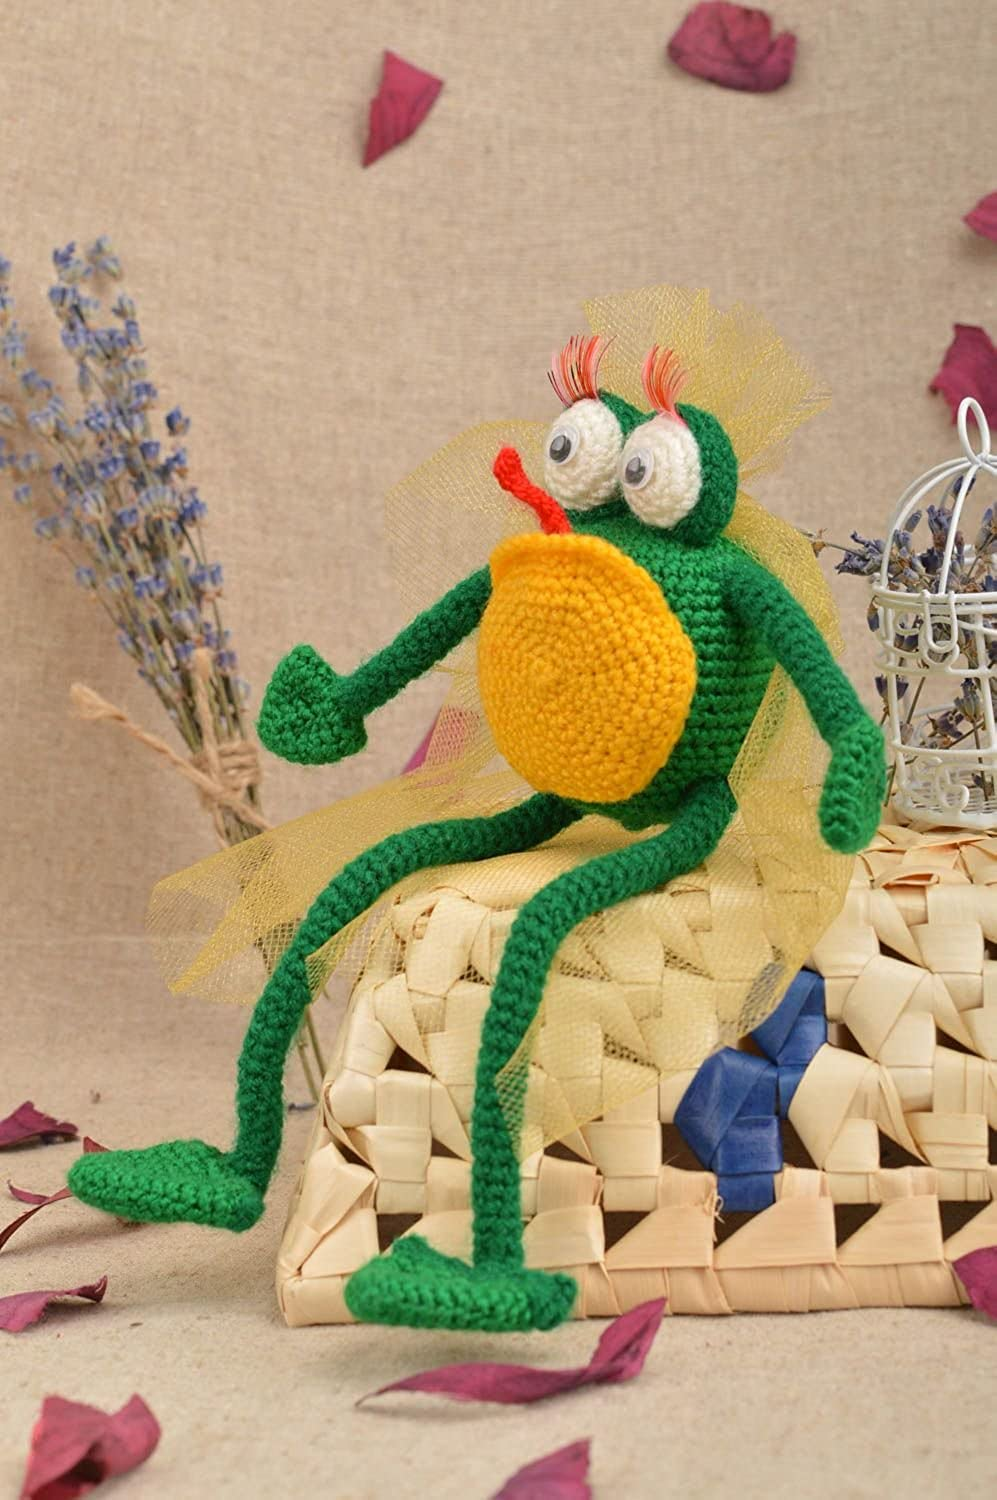 Handmade Funny Designer Toy Unusual Woven Frog Beautiful Interior Decor